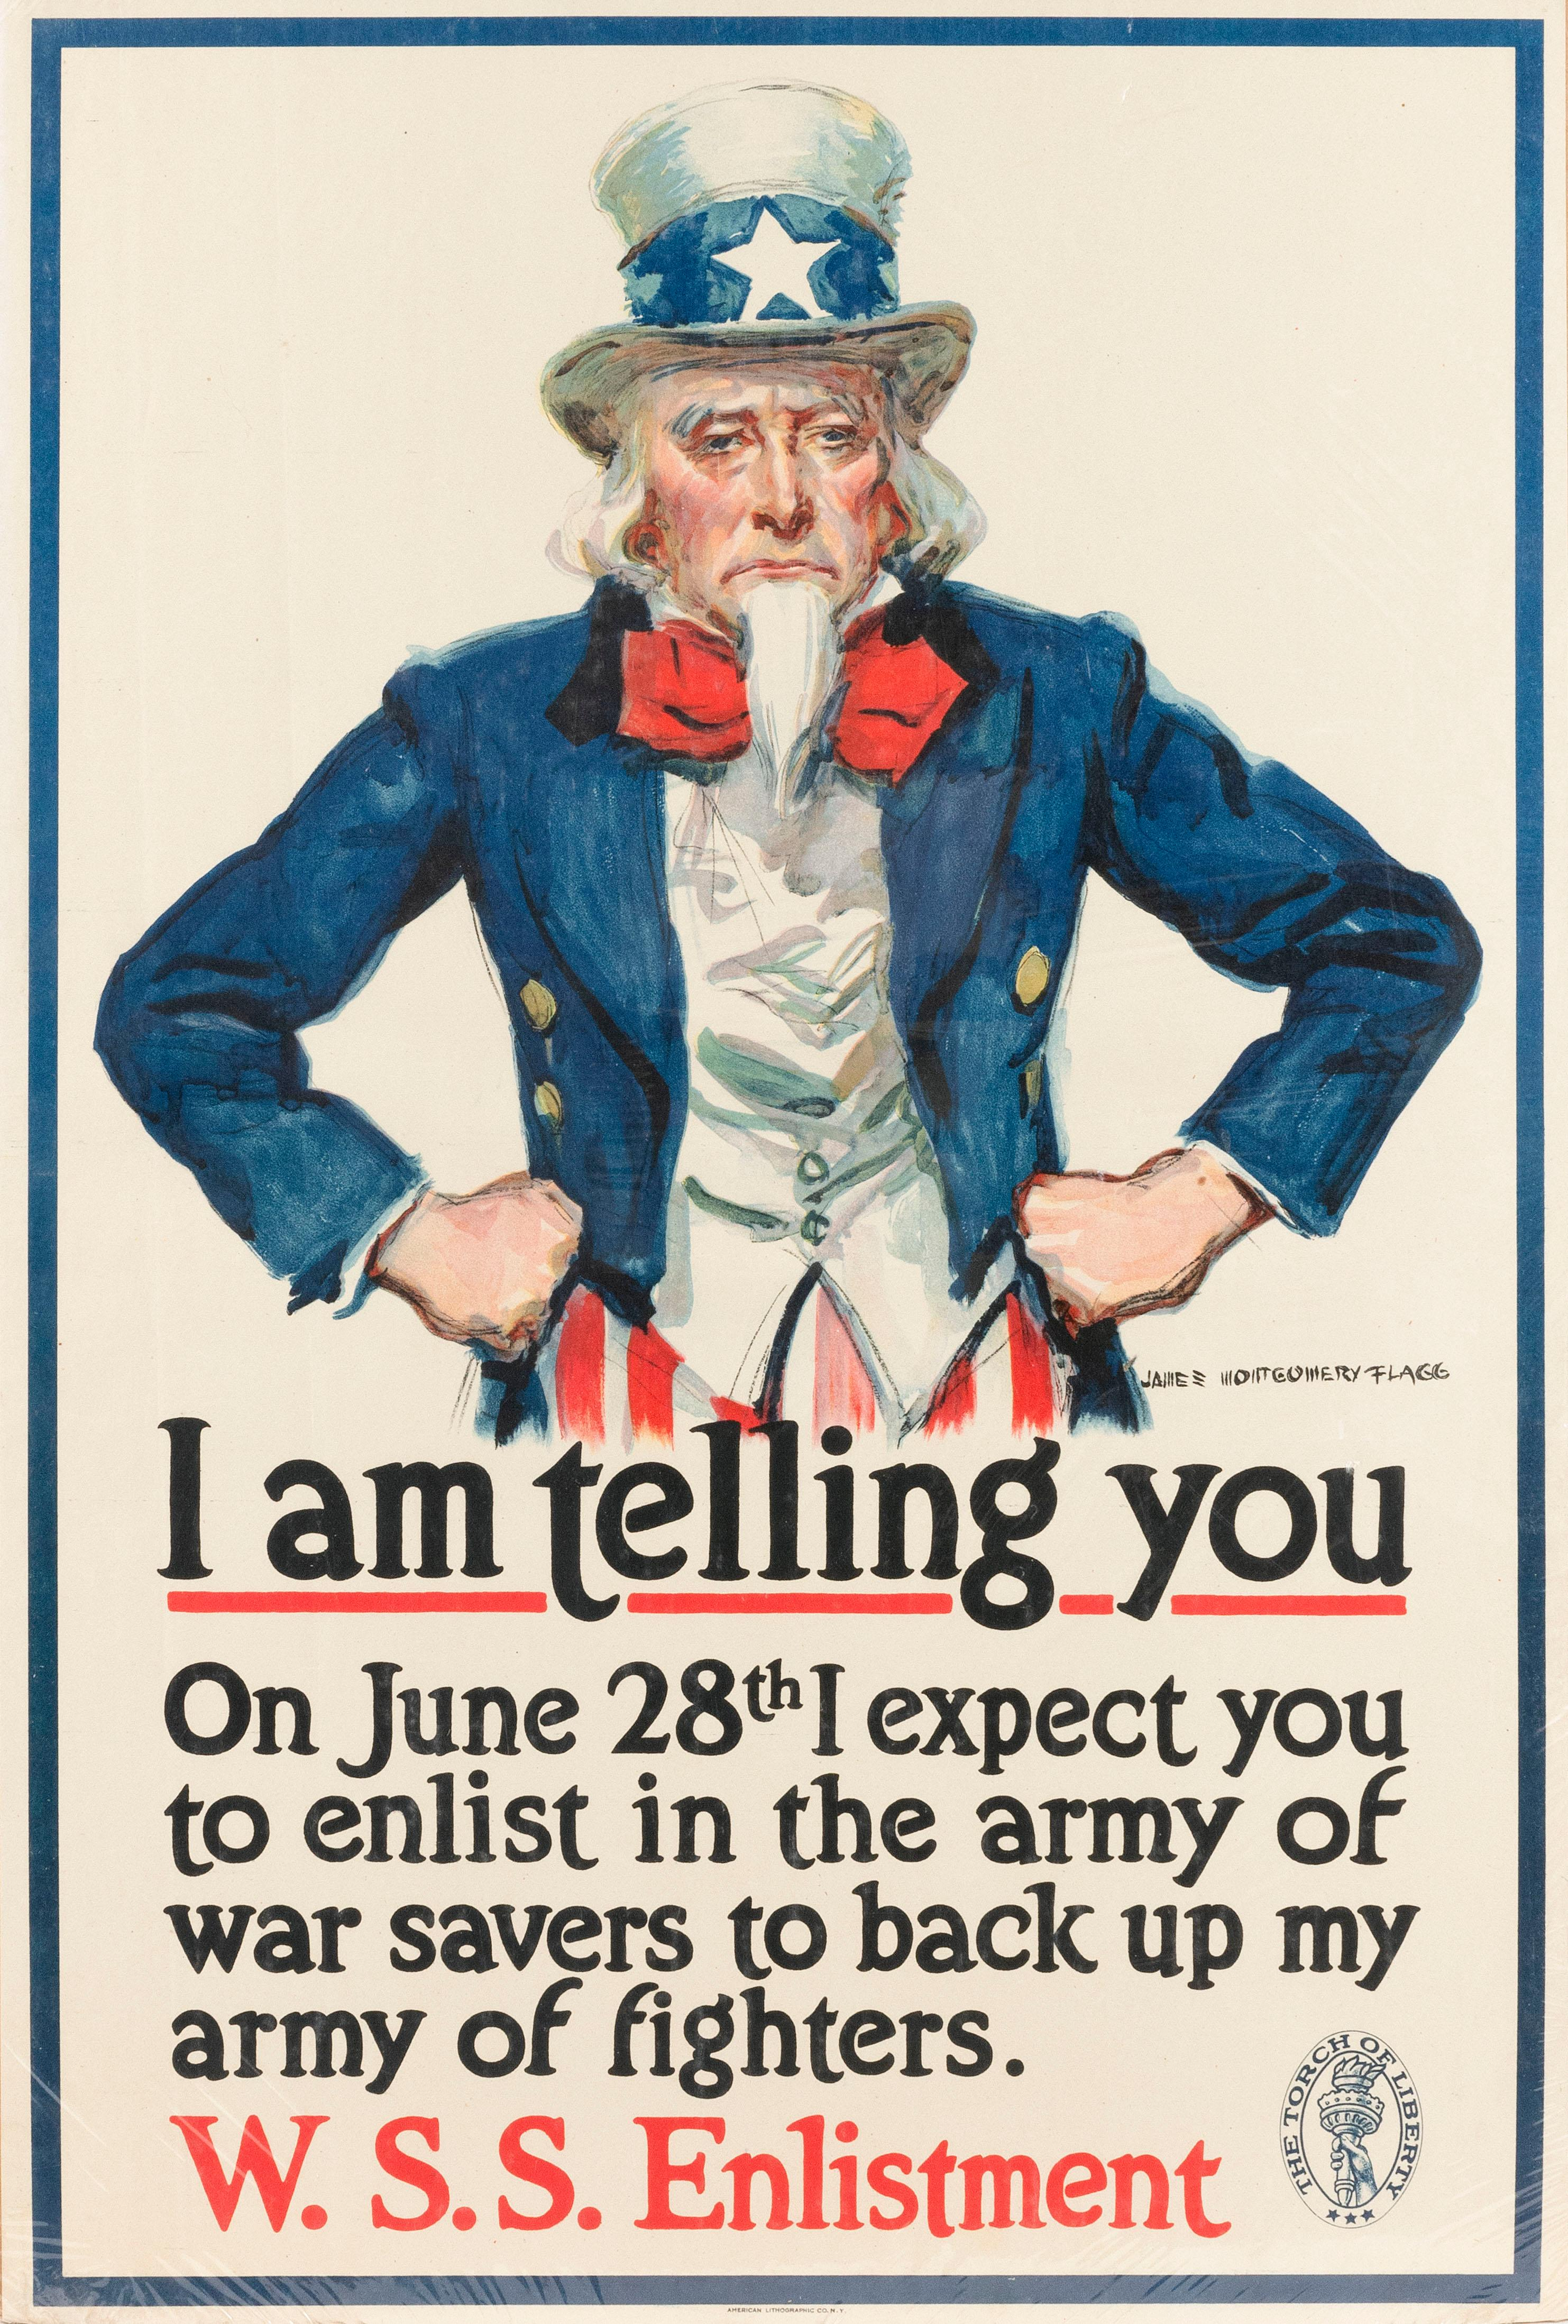 """""""I AM TELLING YOU ..."""" WORLD WAR I POSTER By James Montgomery Flagg for W.S.S. Enlistment, published by the American Lithographic Co..."""